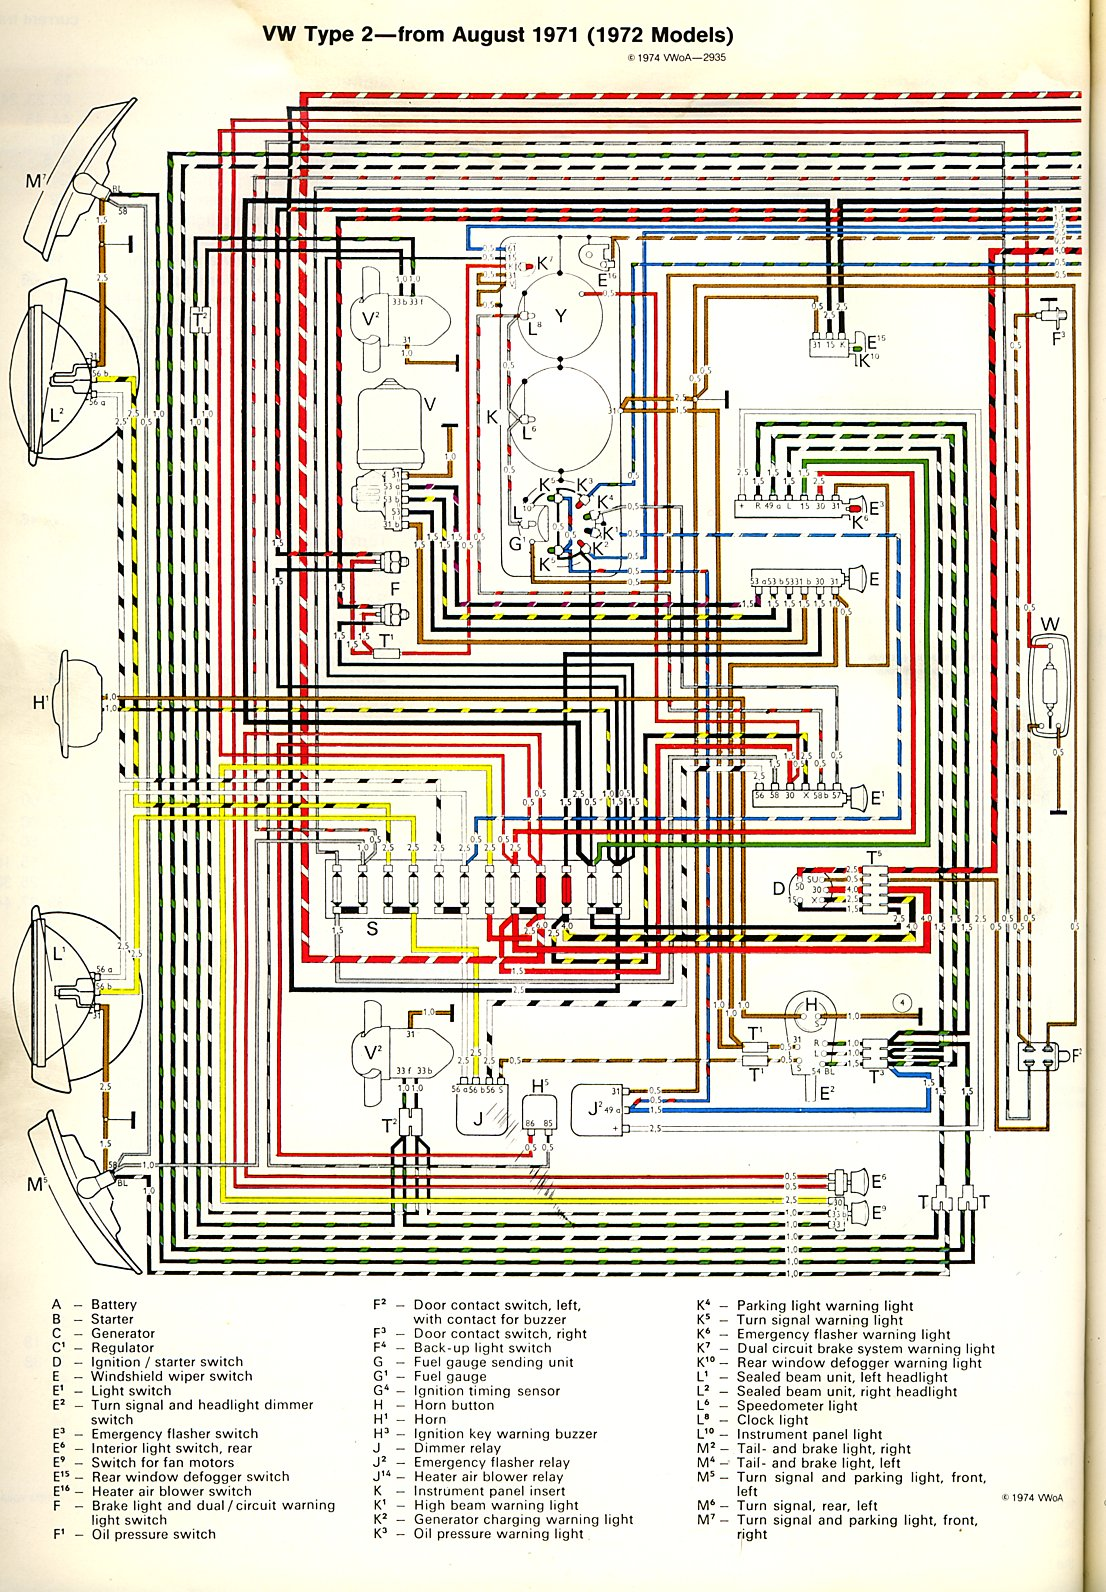 72 Vw Wiring Diagram Free For You Beetle Engine Voltage Regulator 1974 1972 Super Heater Image Generator Bus